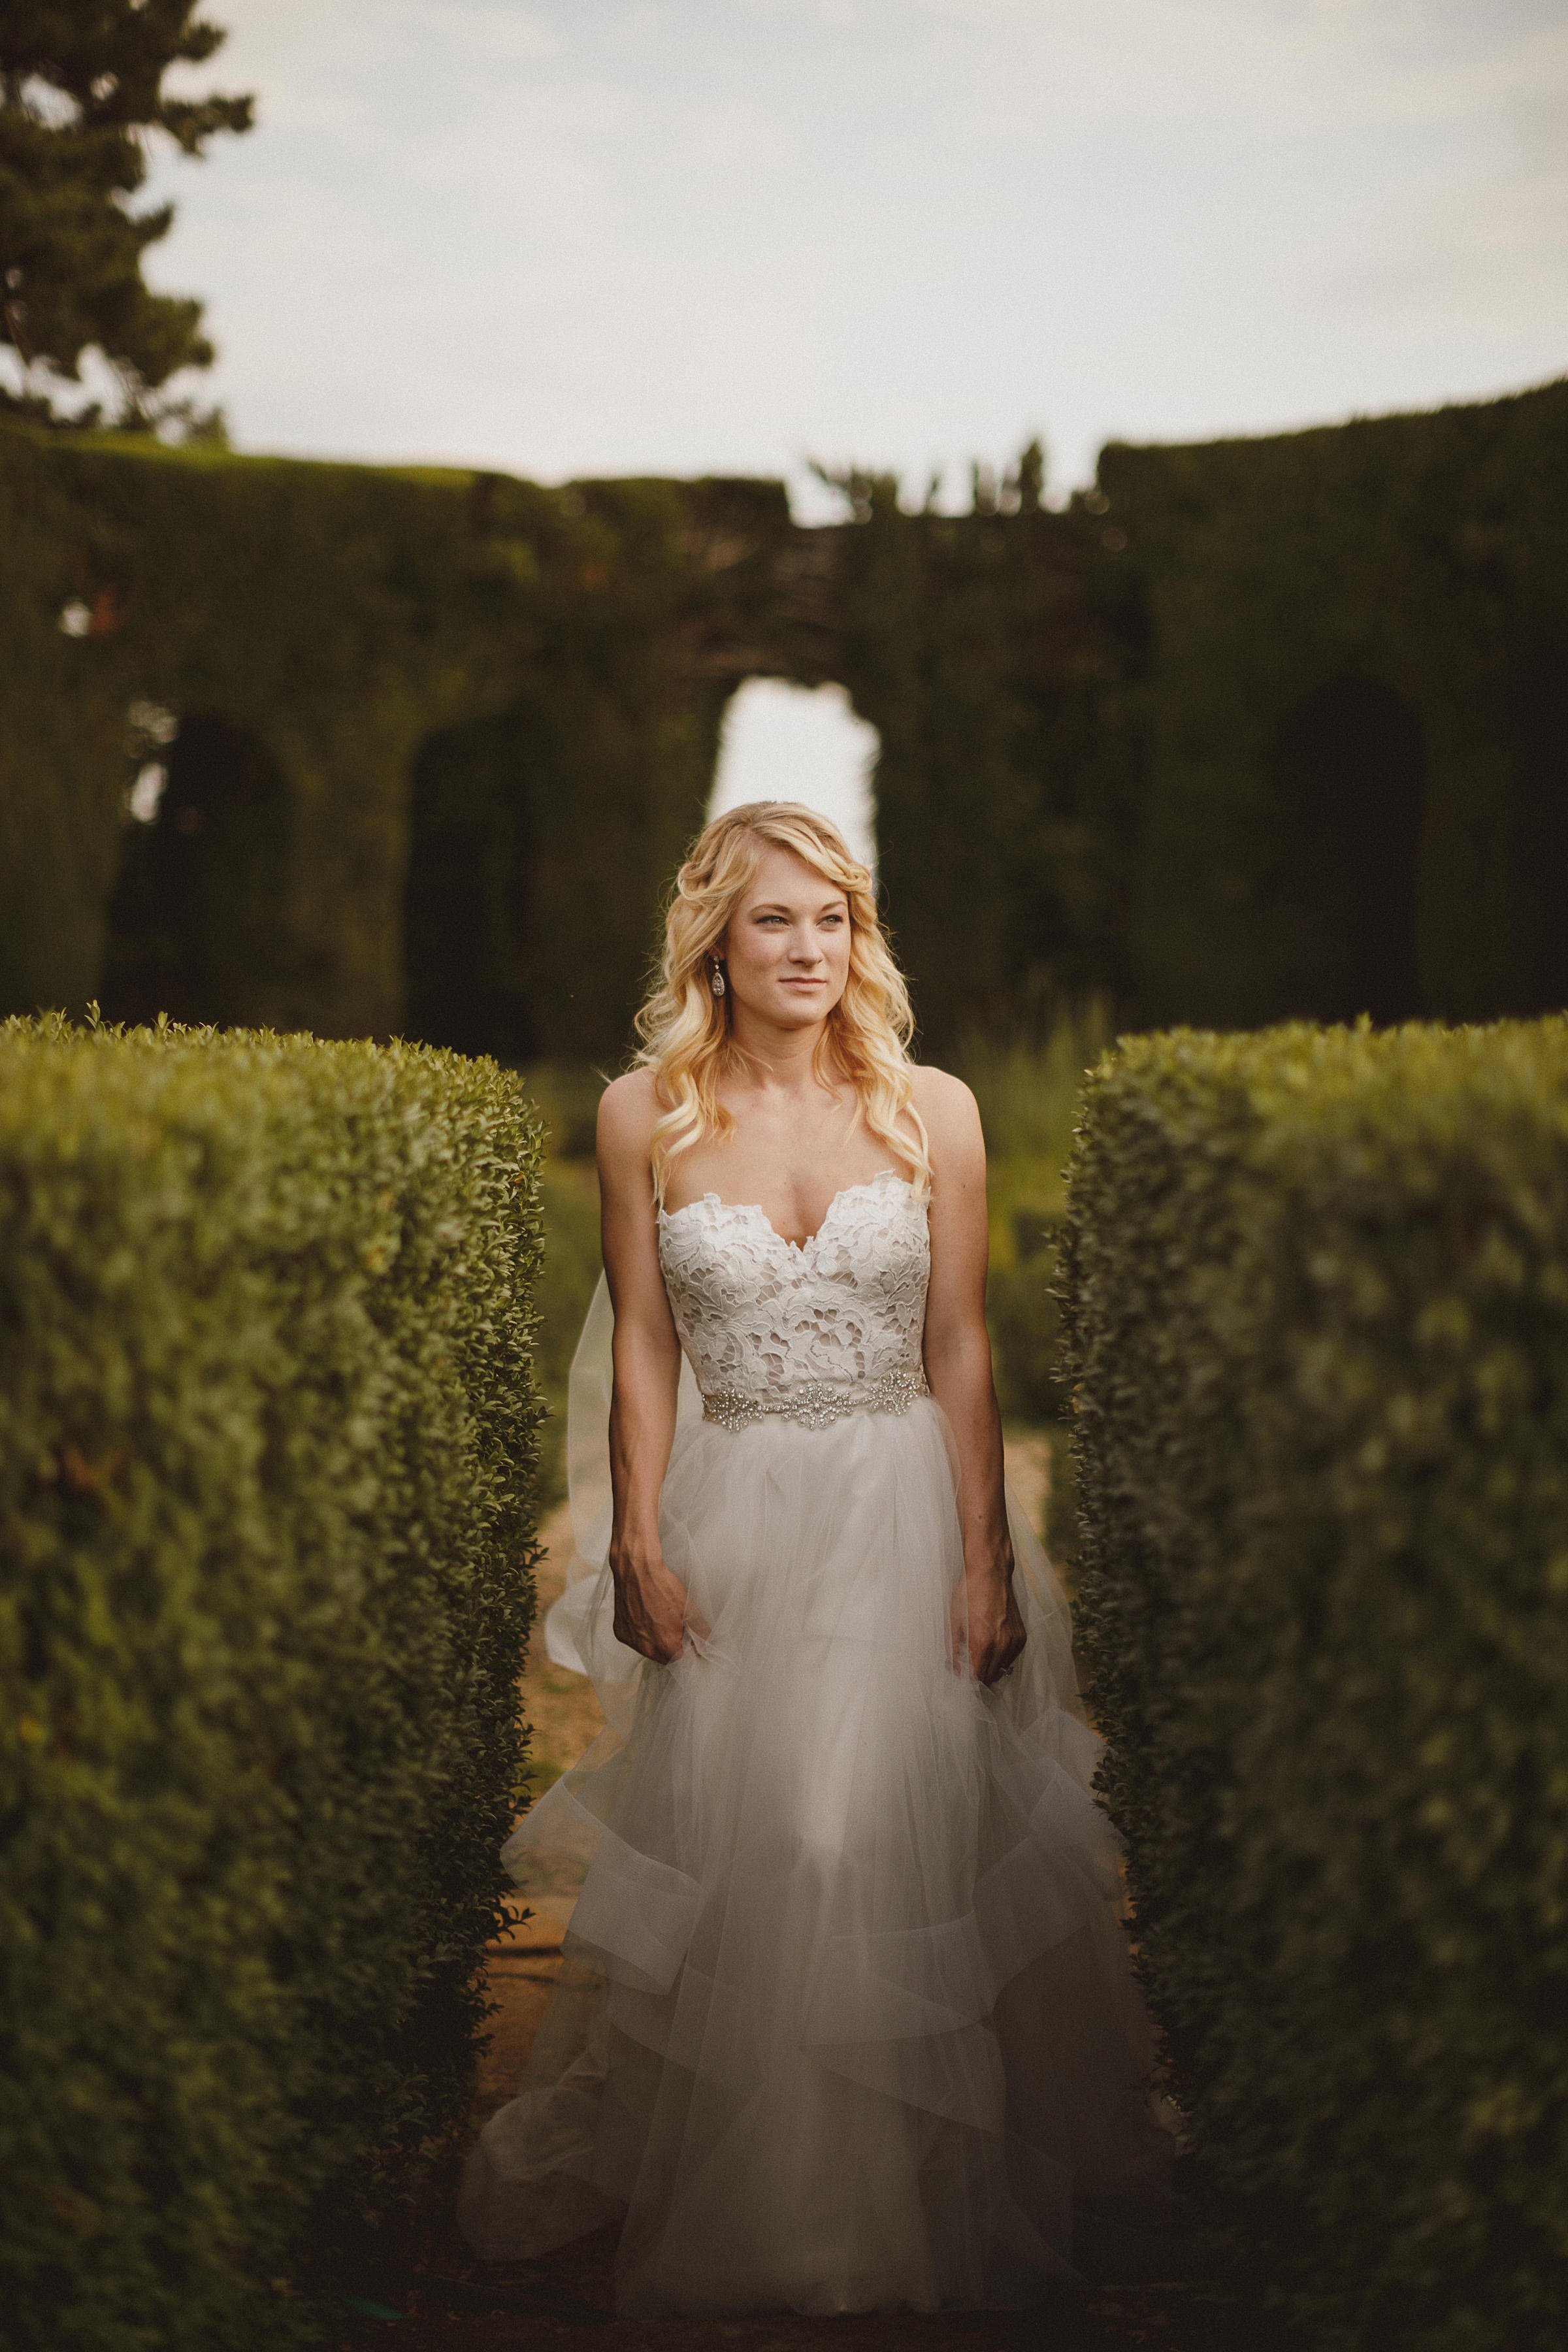 Bride pose in garden - photo by Ed Peers Photography